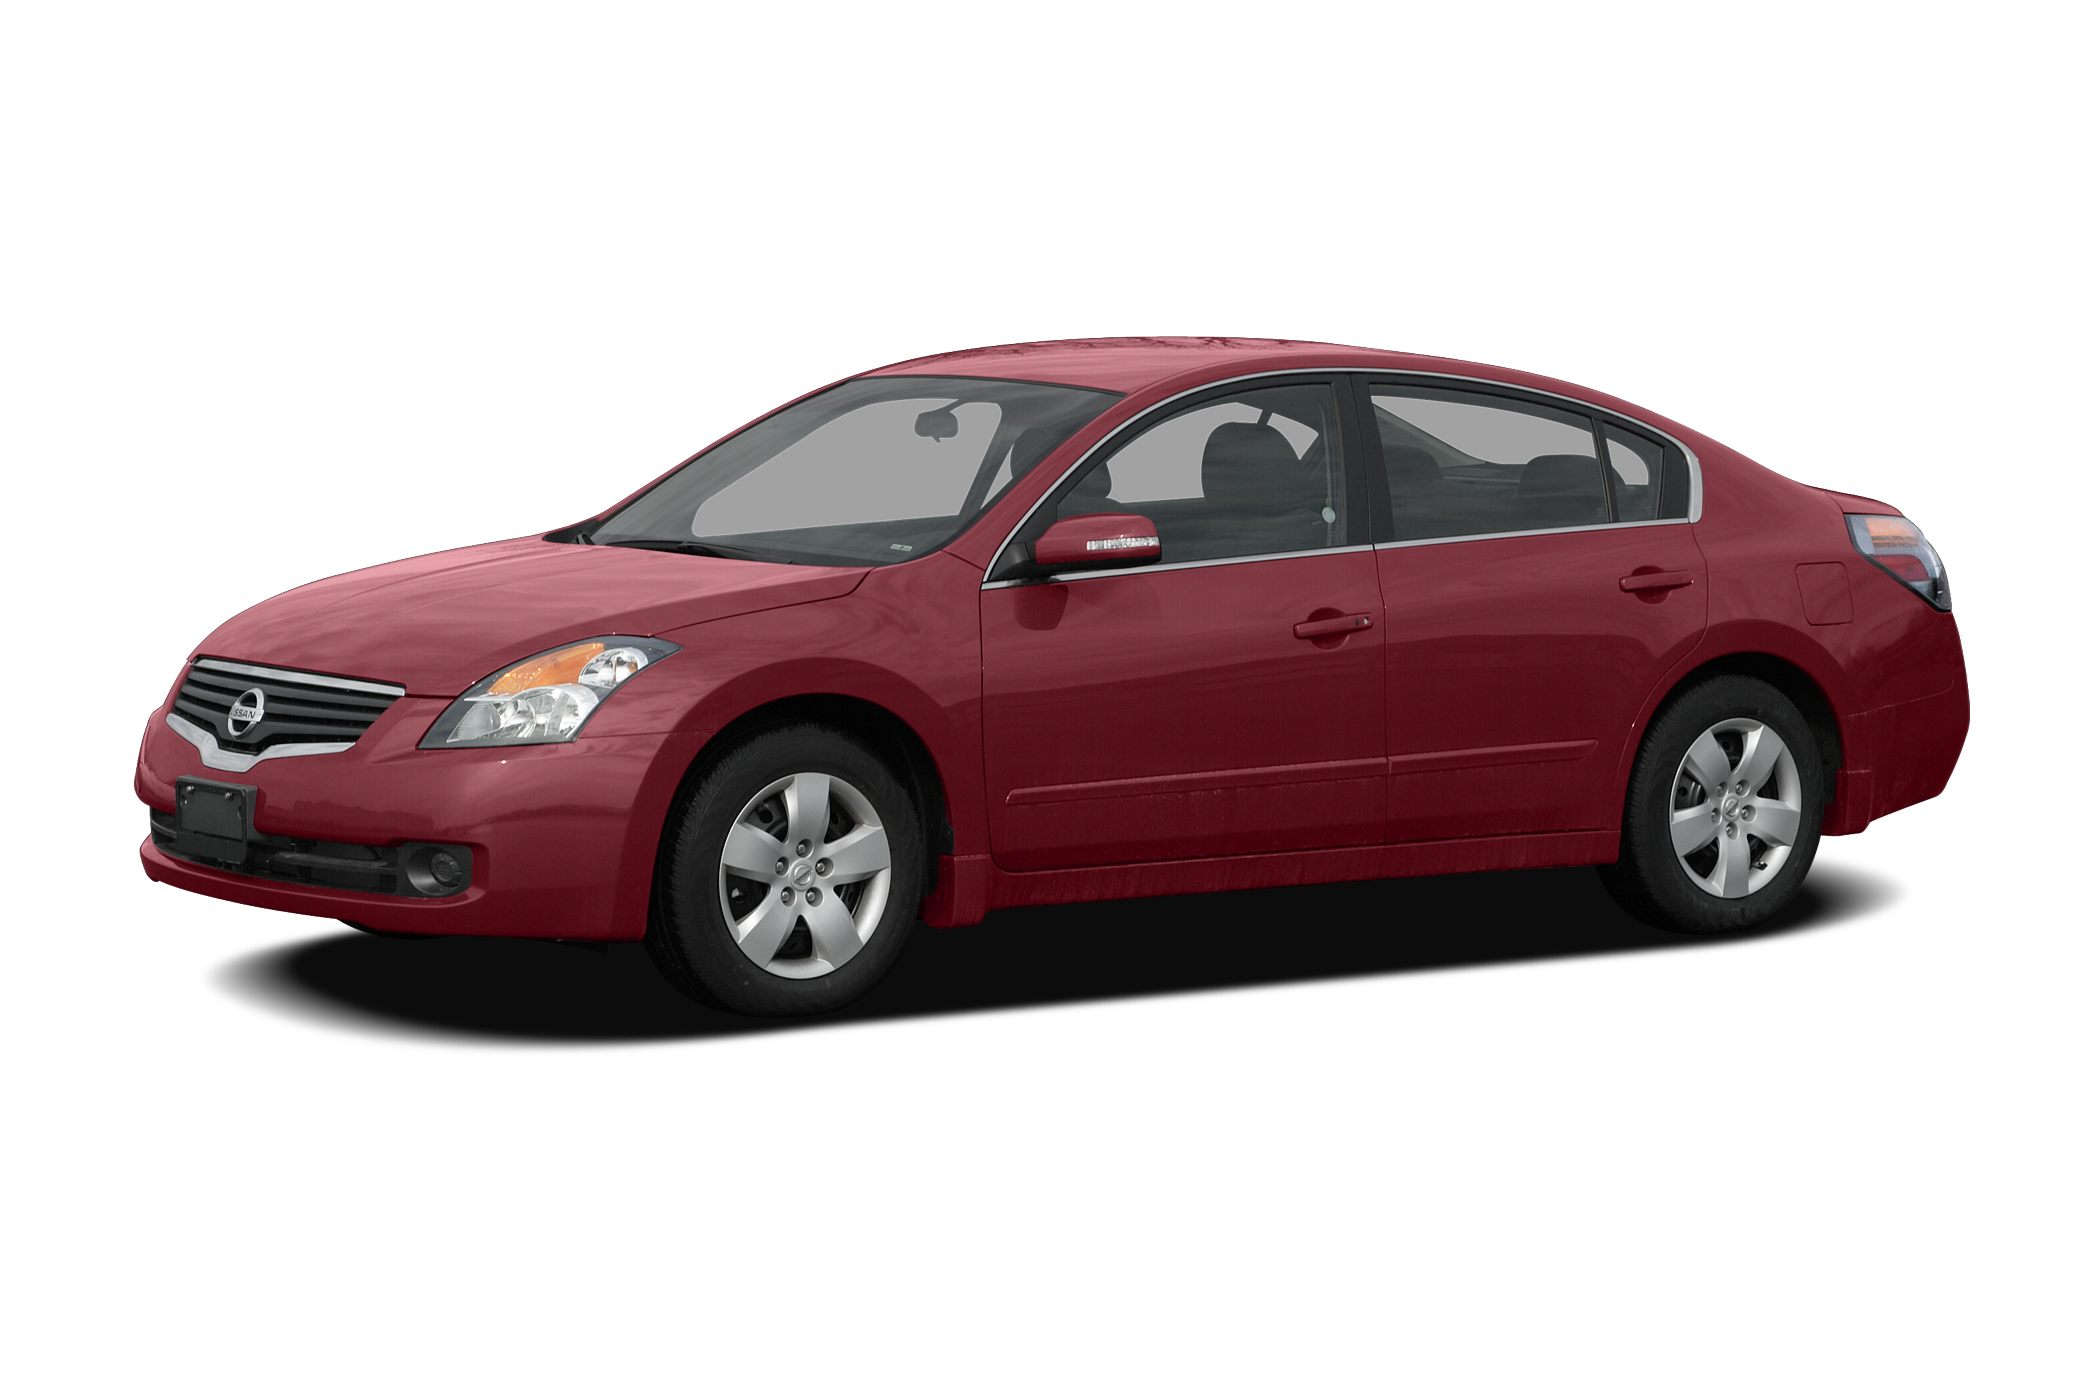 2009 Nissan Altima 2.5 S Sedan for sale in Newark for $0 with 111,081 miles